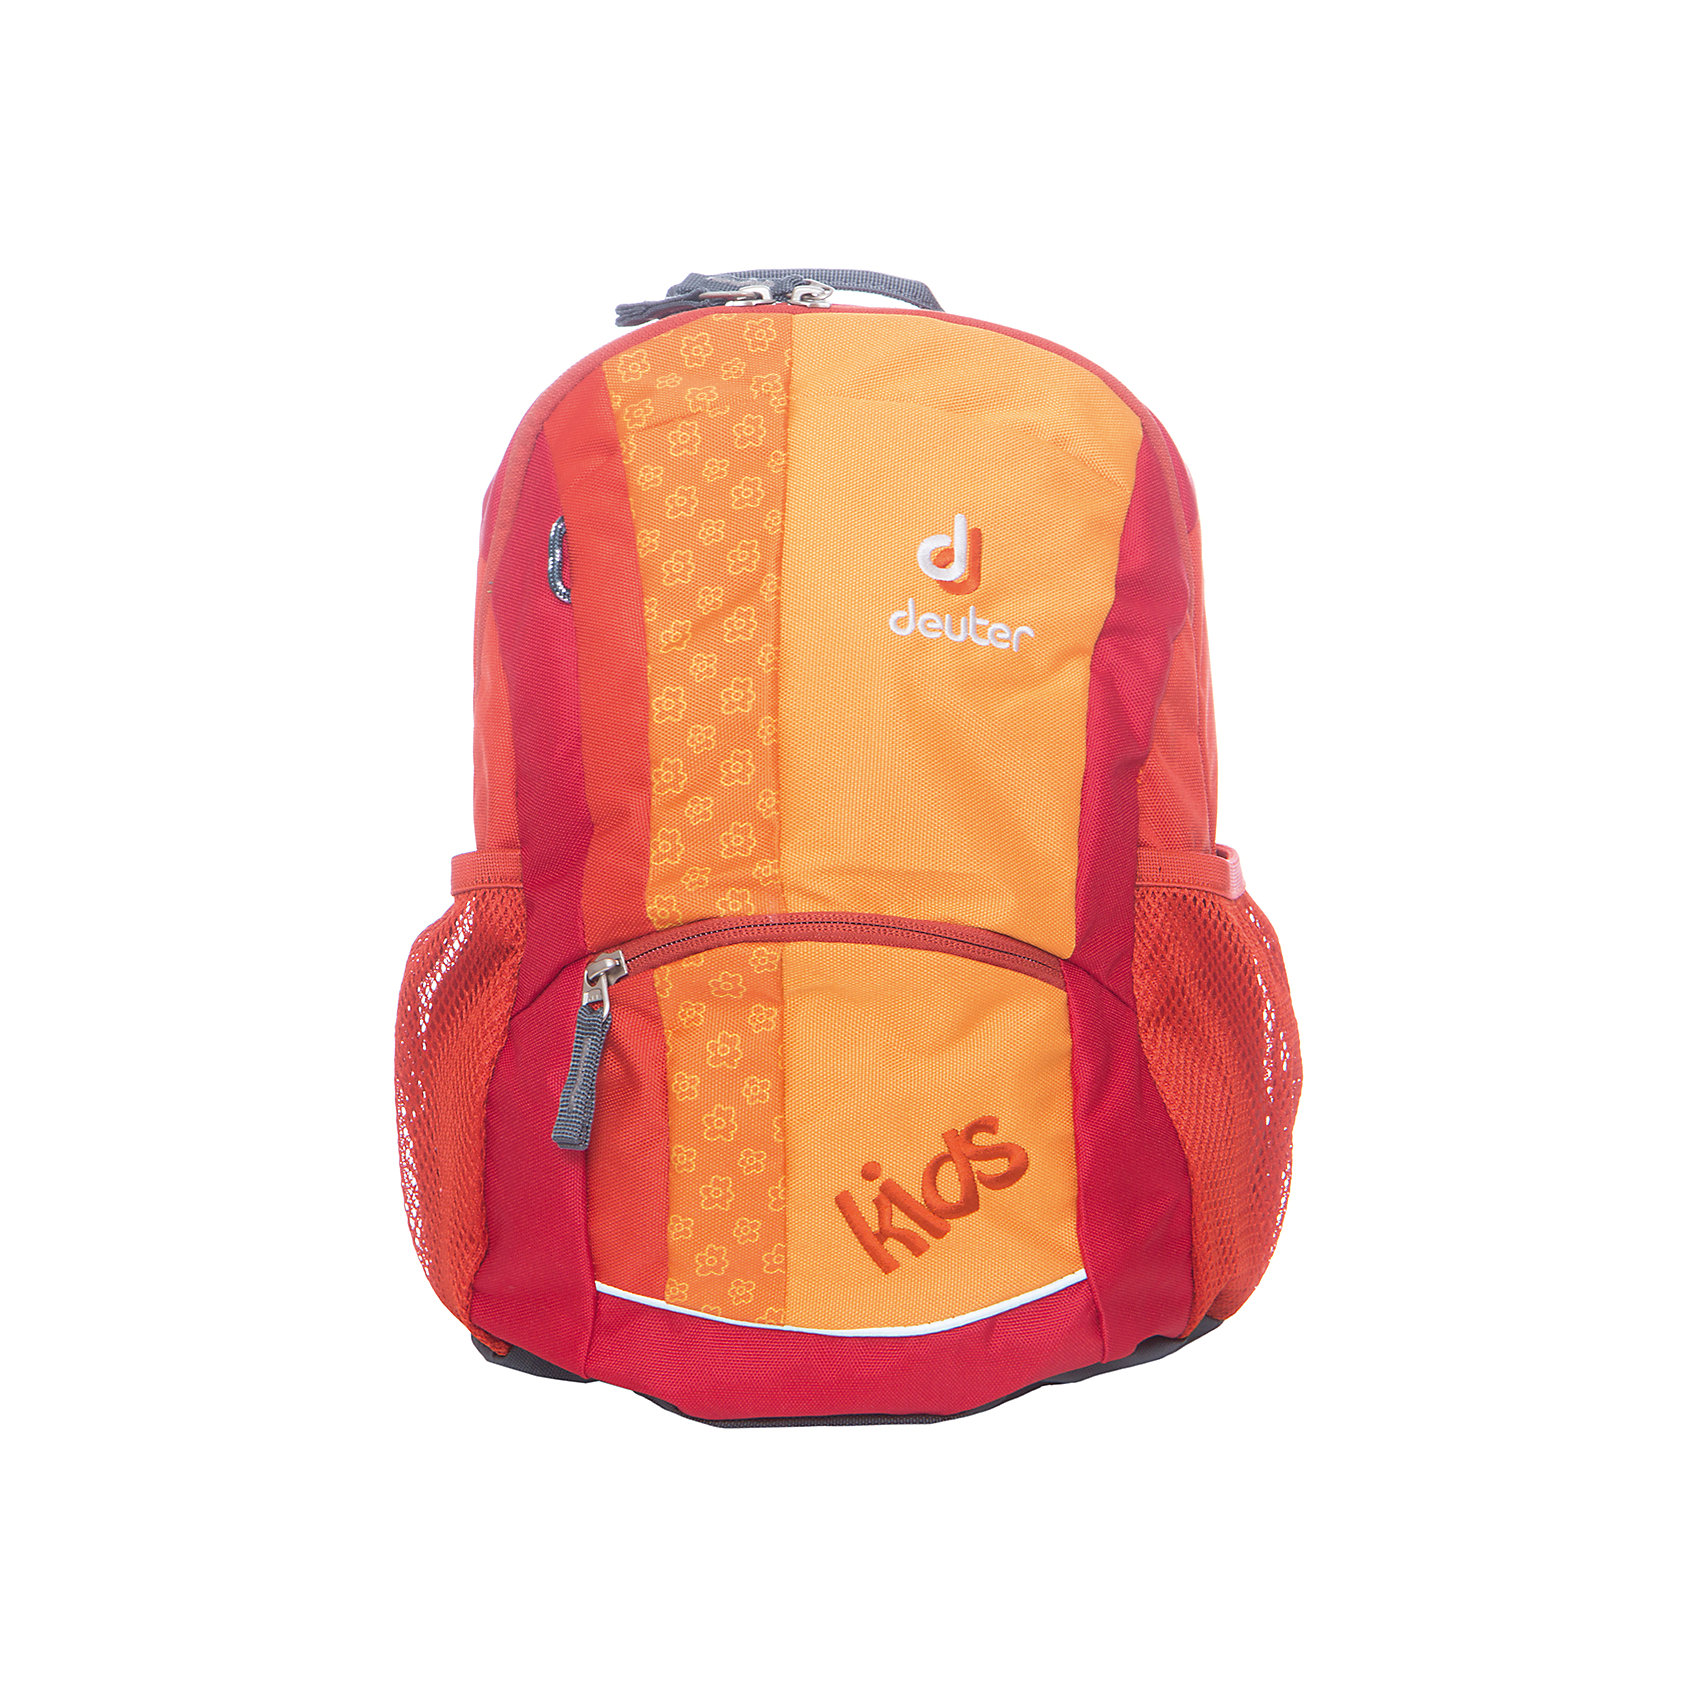 Deuter Рюкзак Kids, оранжевый deuter giga blackberry dresscode